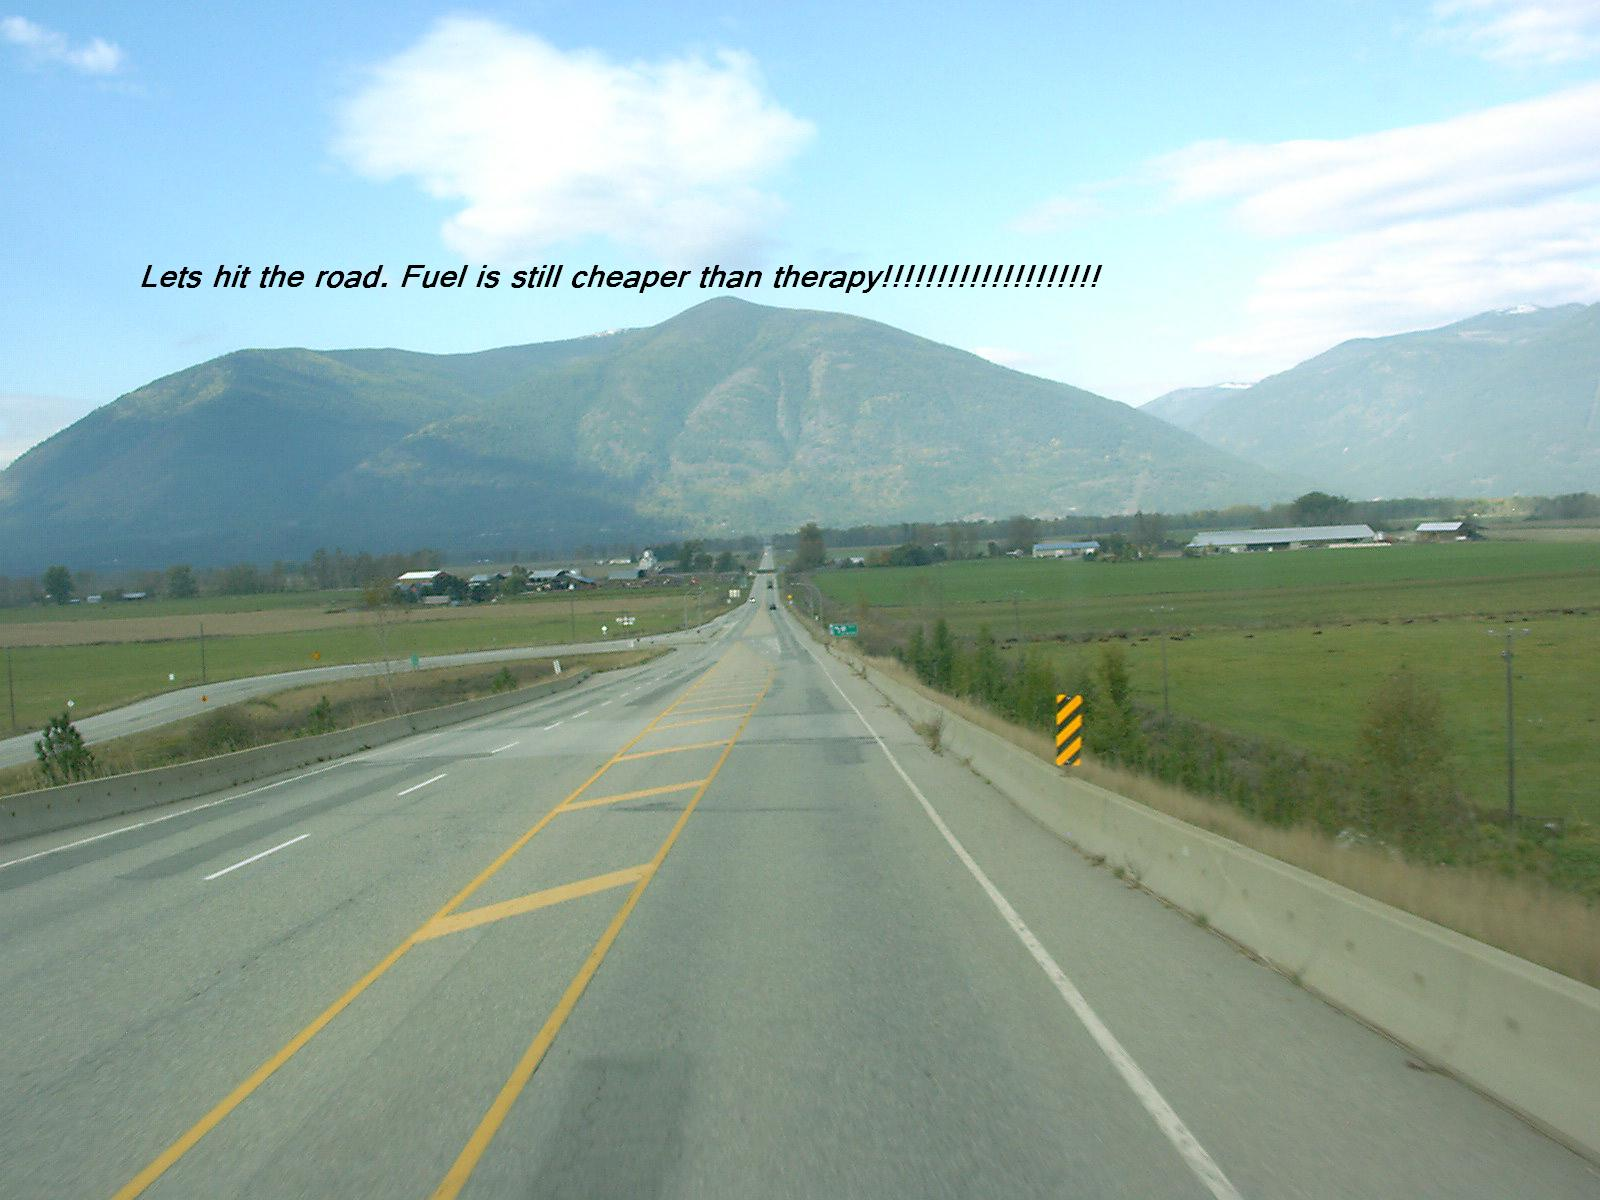 Click image for larger version  Name:Hit The Road 1.jpg Views:55 Size:196.7 KB ID:202169